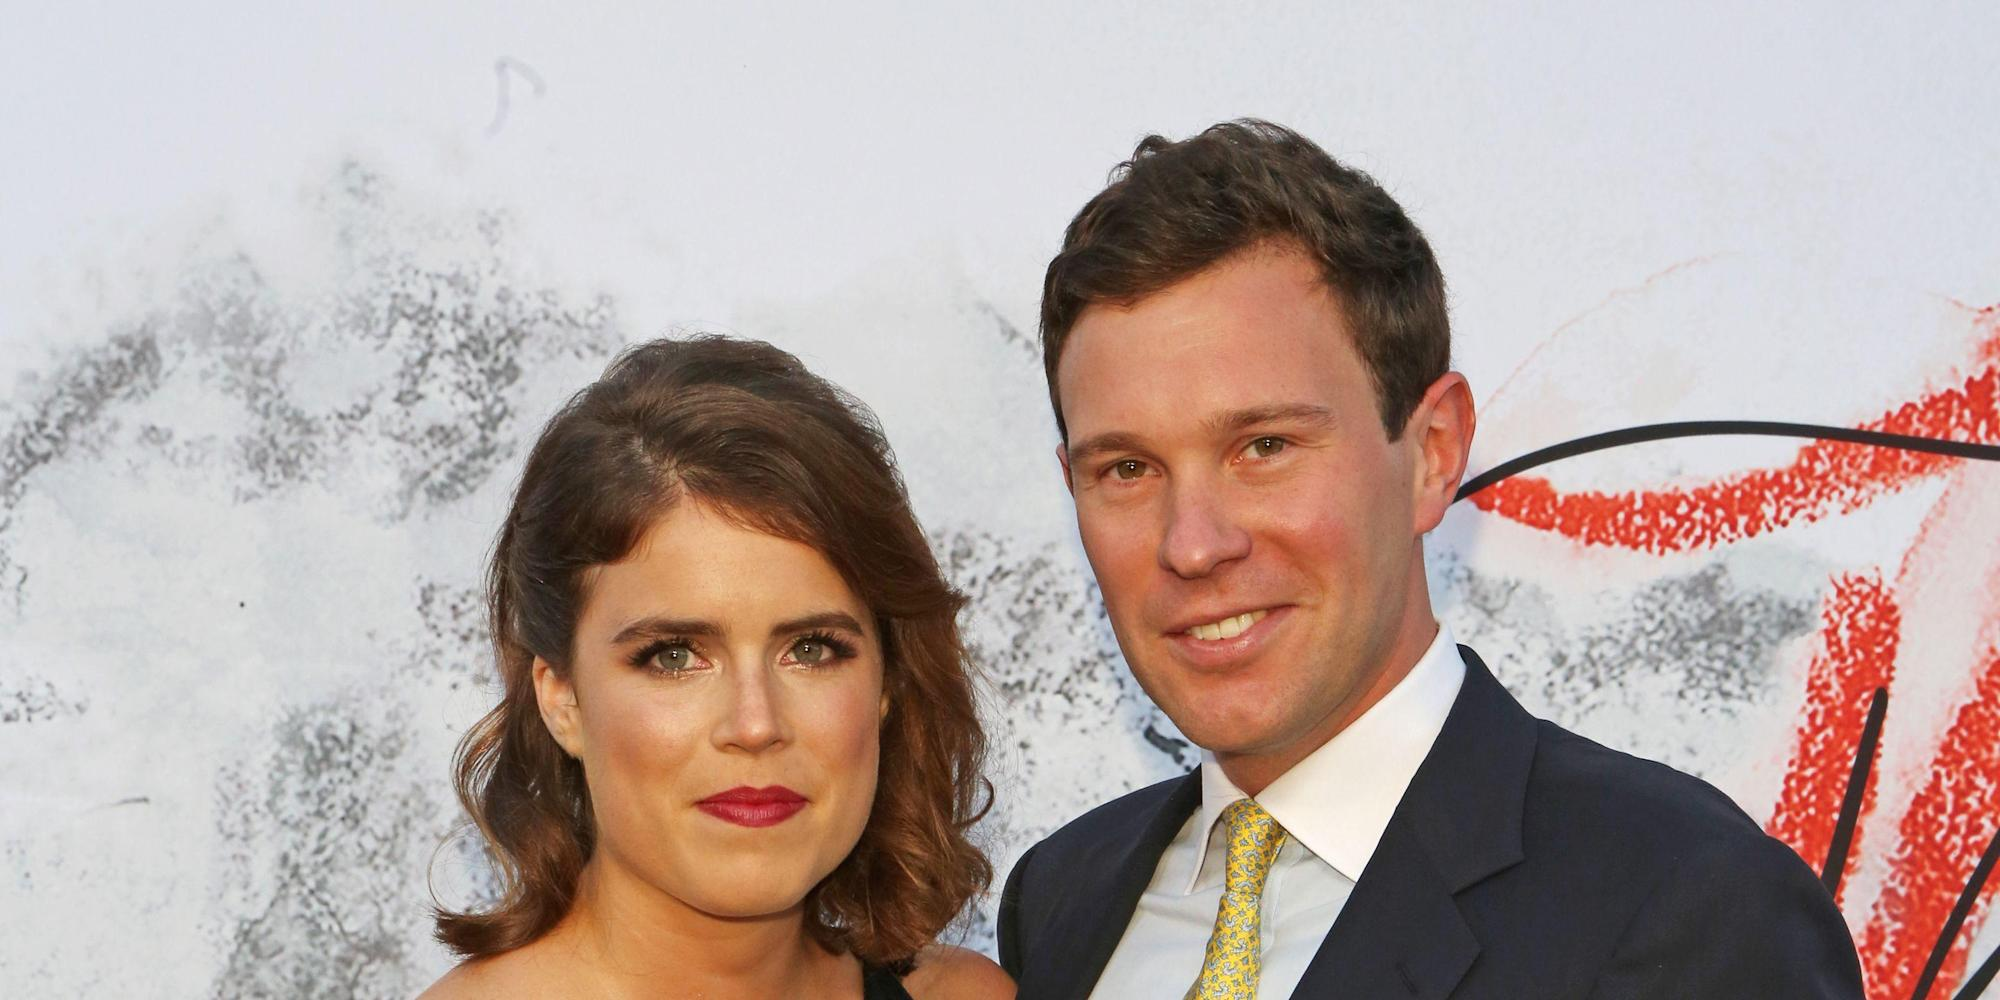 Princess Eugenie's Mom Speaks Out About Photos of Jack Brooksbank on a Yacht with Models